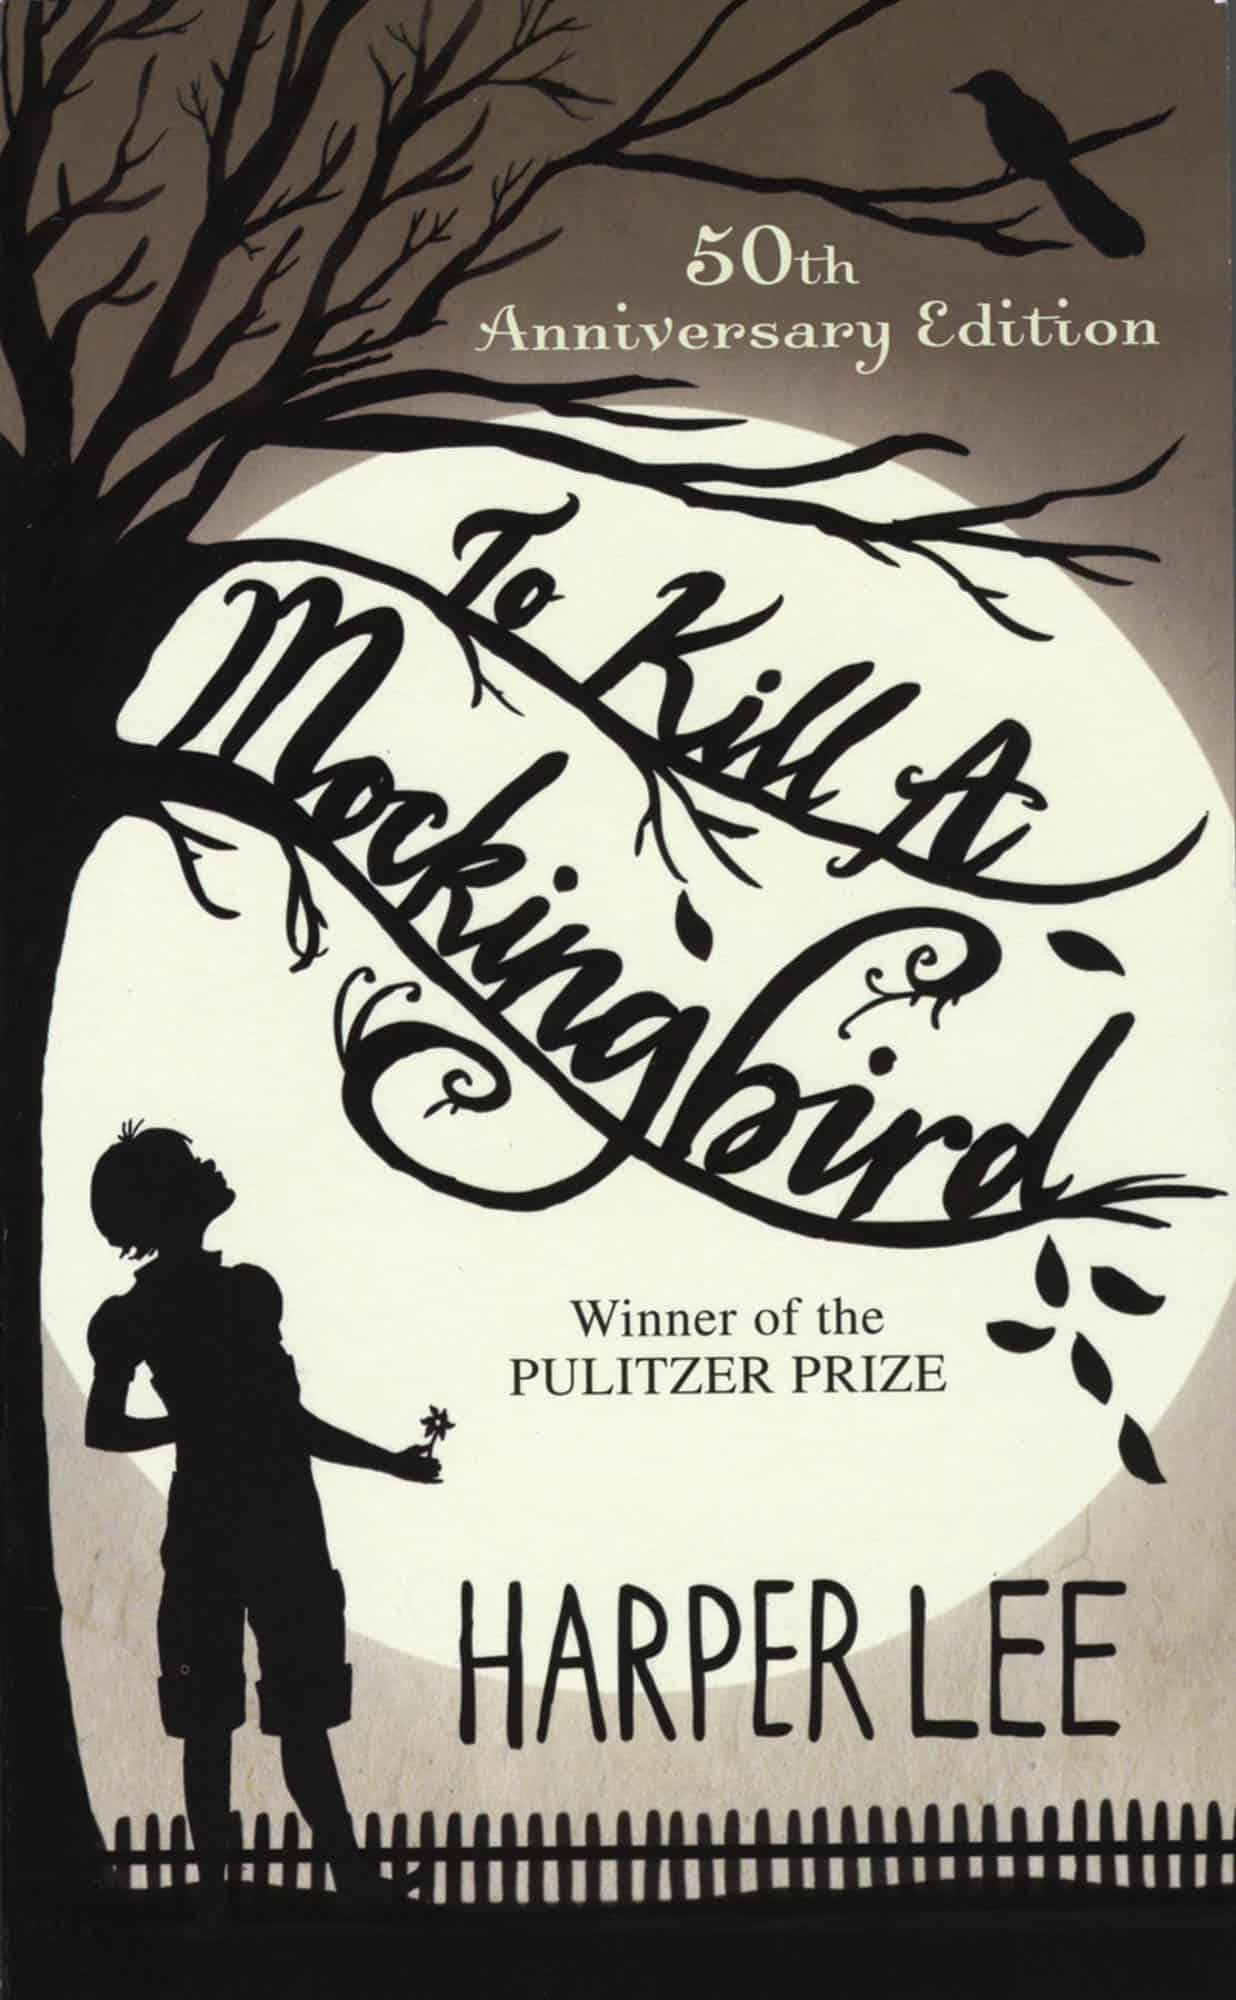 an evaluation of the novel to kill a mockingbird by harper lee To kill a mockingbird [harper lee] on amazoncom free shipping on qualifying offers the unforgettable novel of a childhood in a sleepy southern town and the crisis of conscience that rocked it.